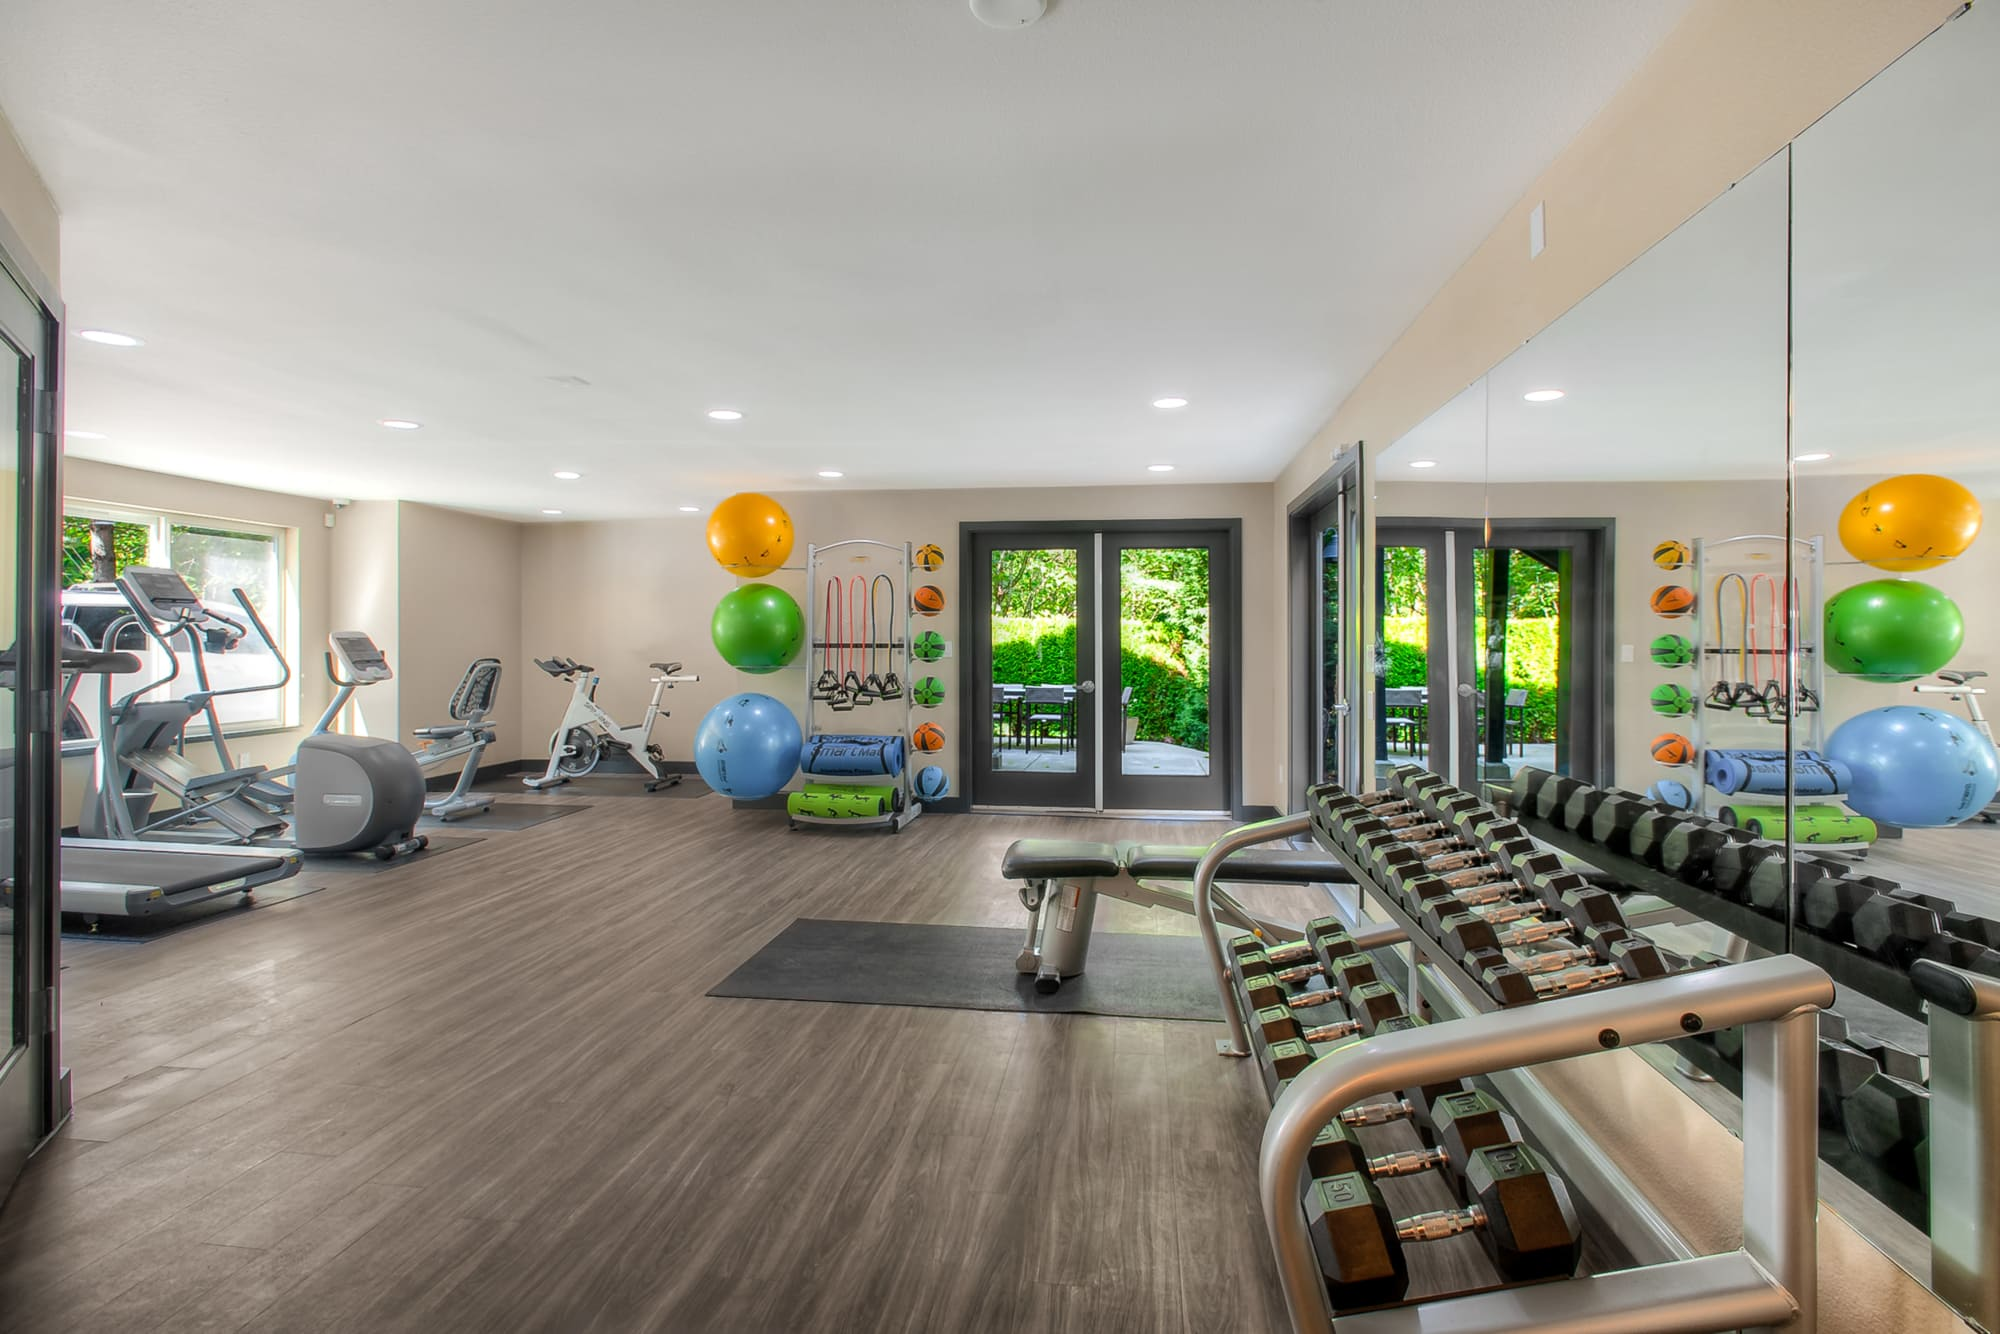 The fitness center at Karbon Apartments in Newcastle, Washington